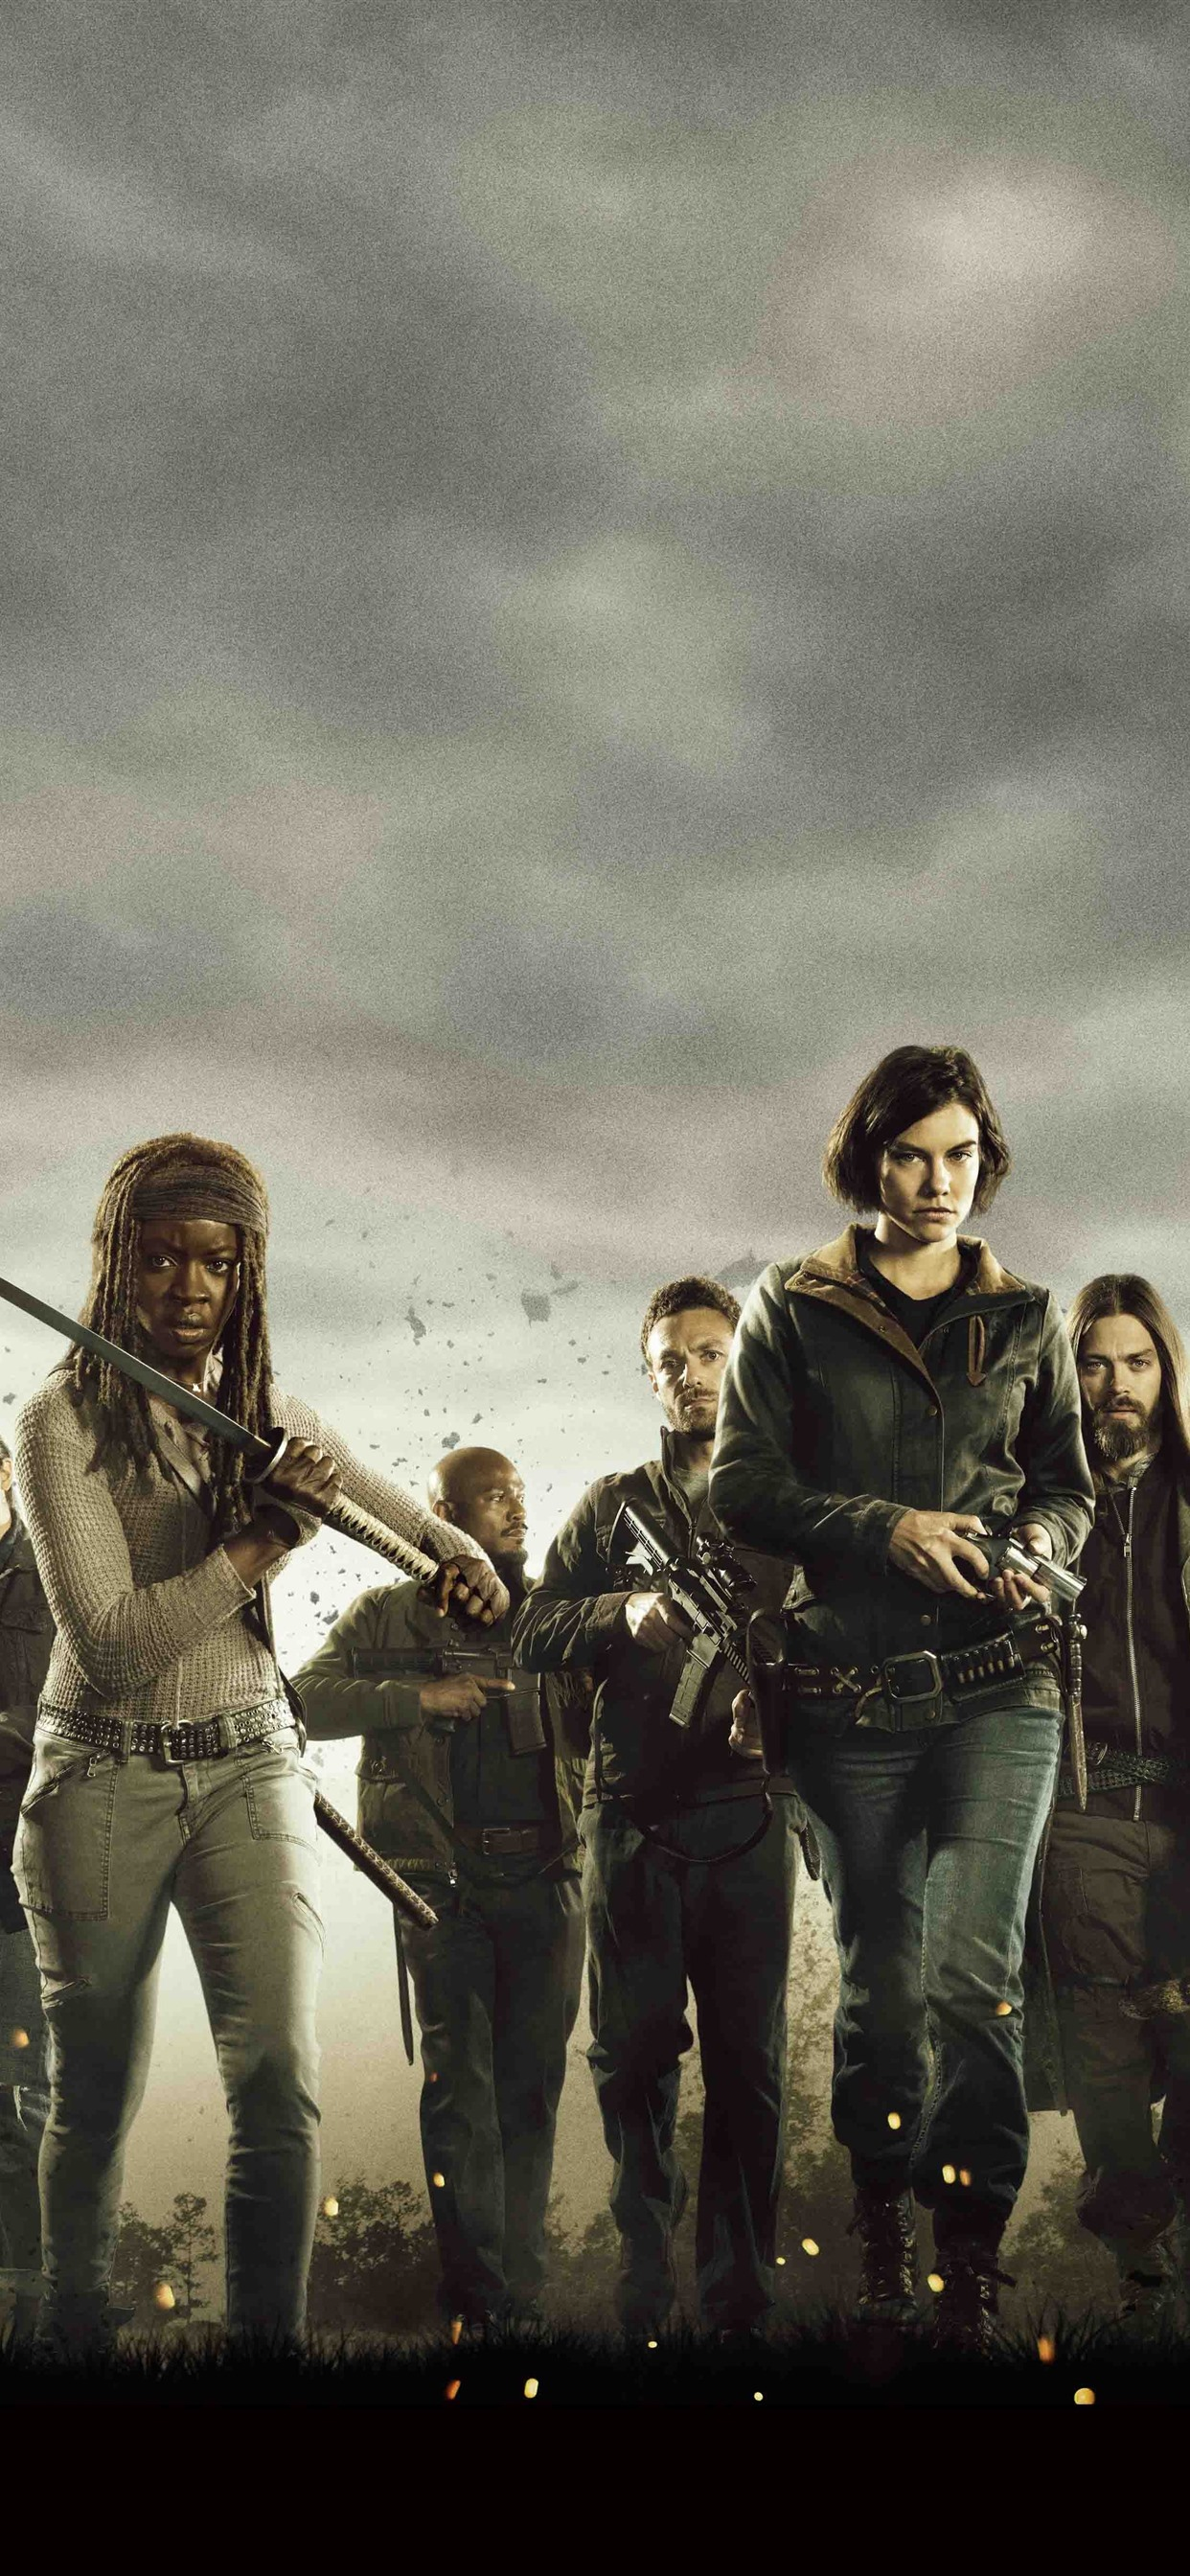 Walking Dead Wallpapers For Iphone Posted By Samantha Peltier